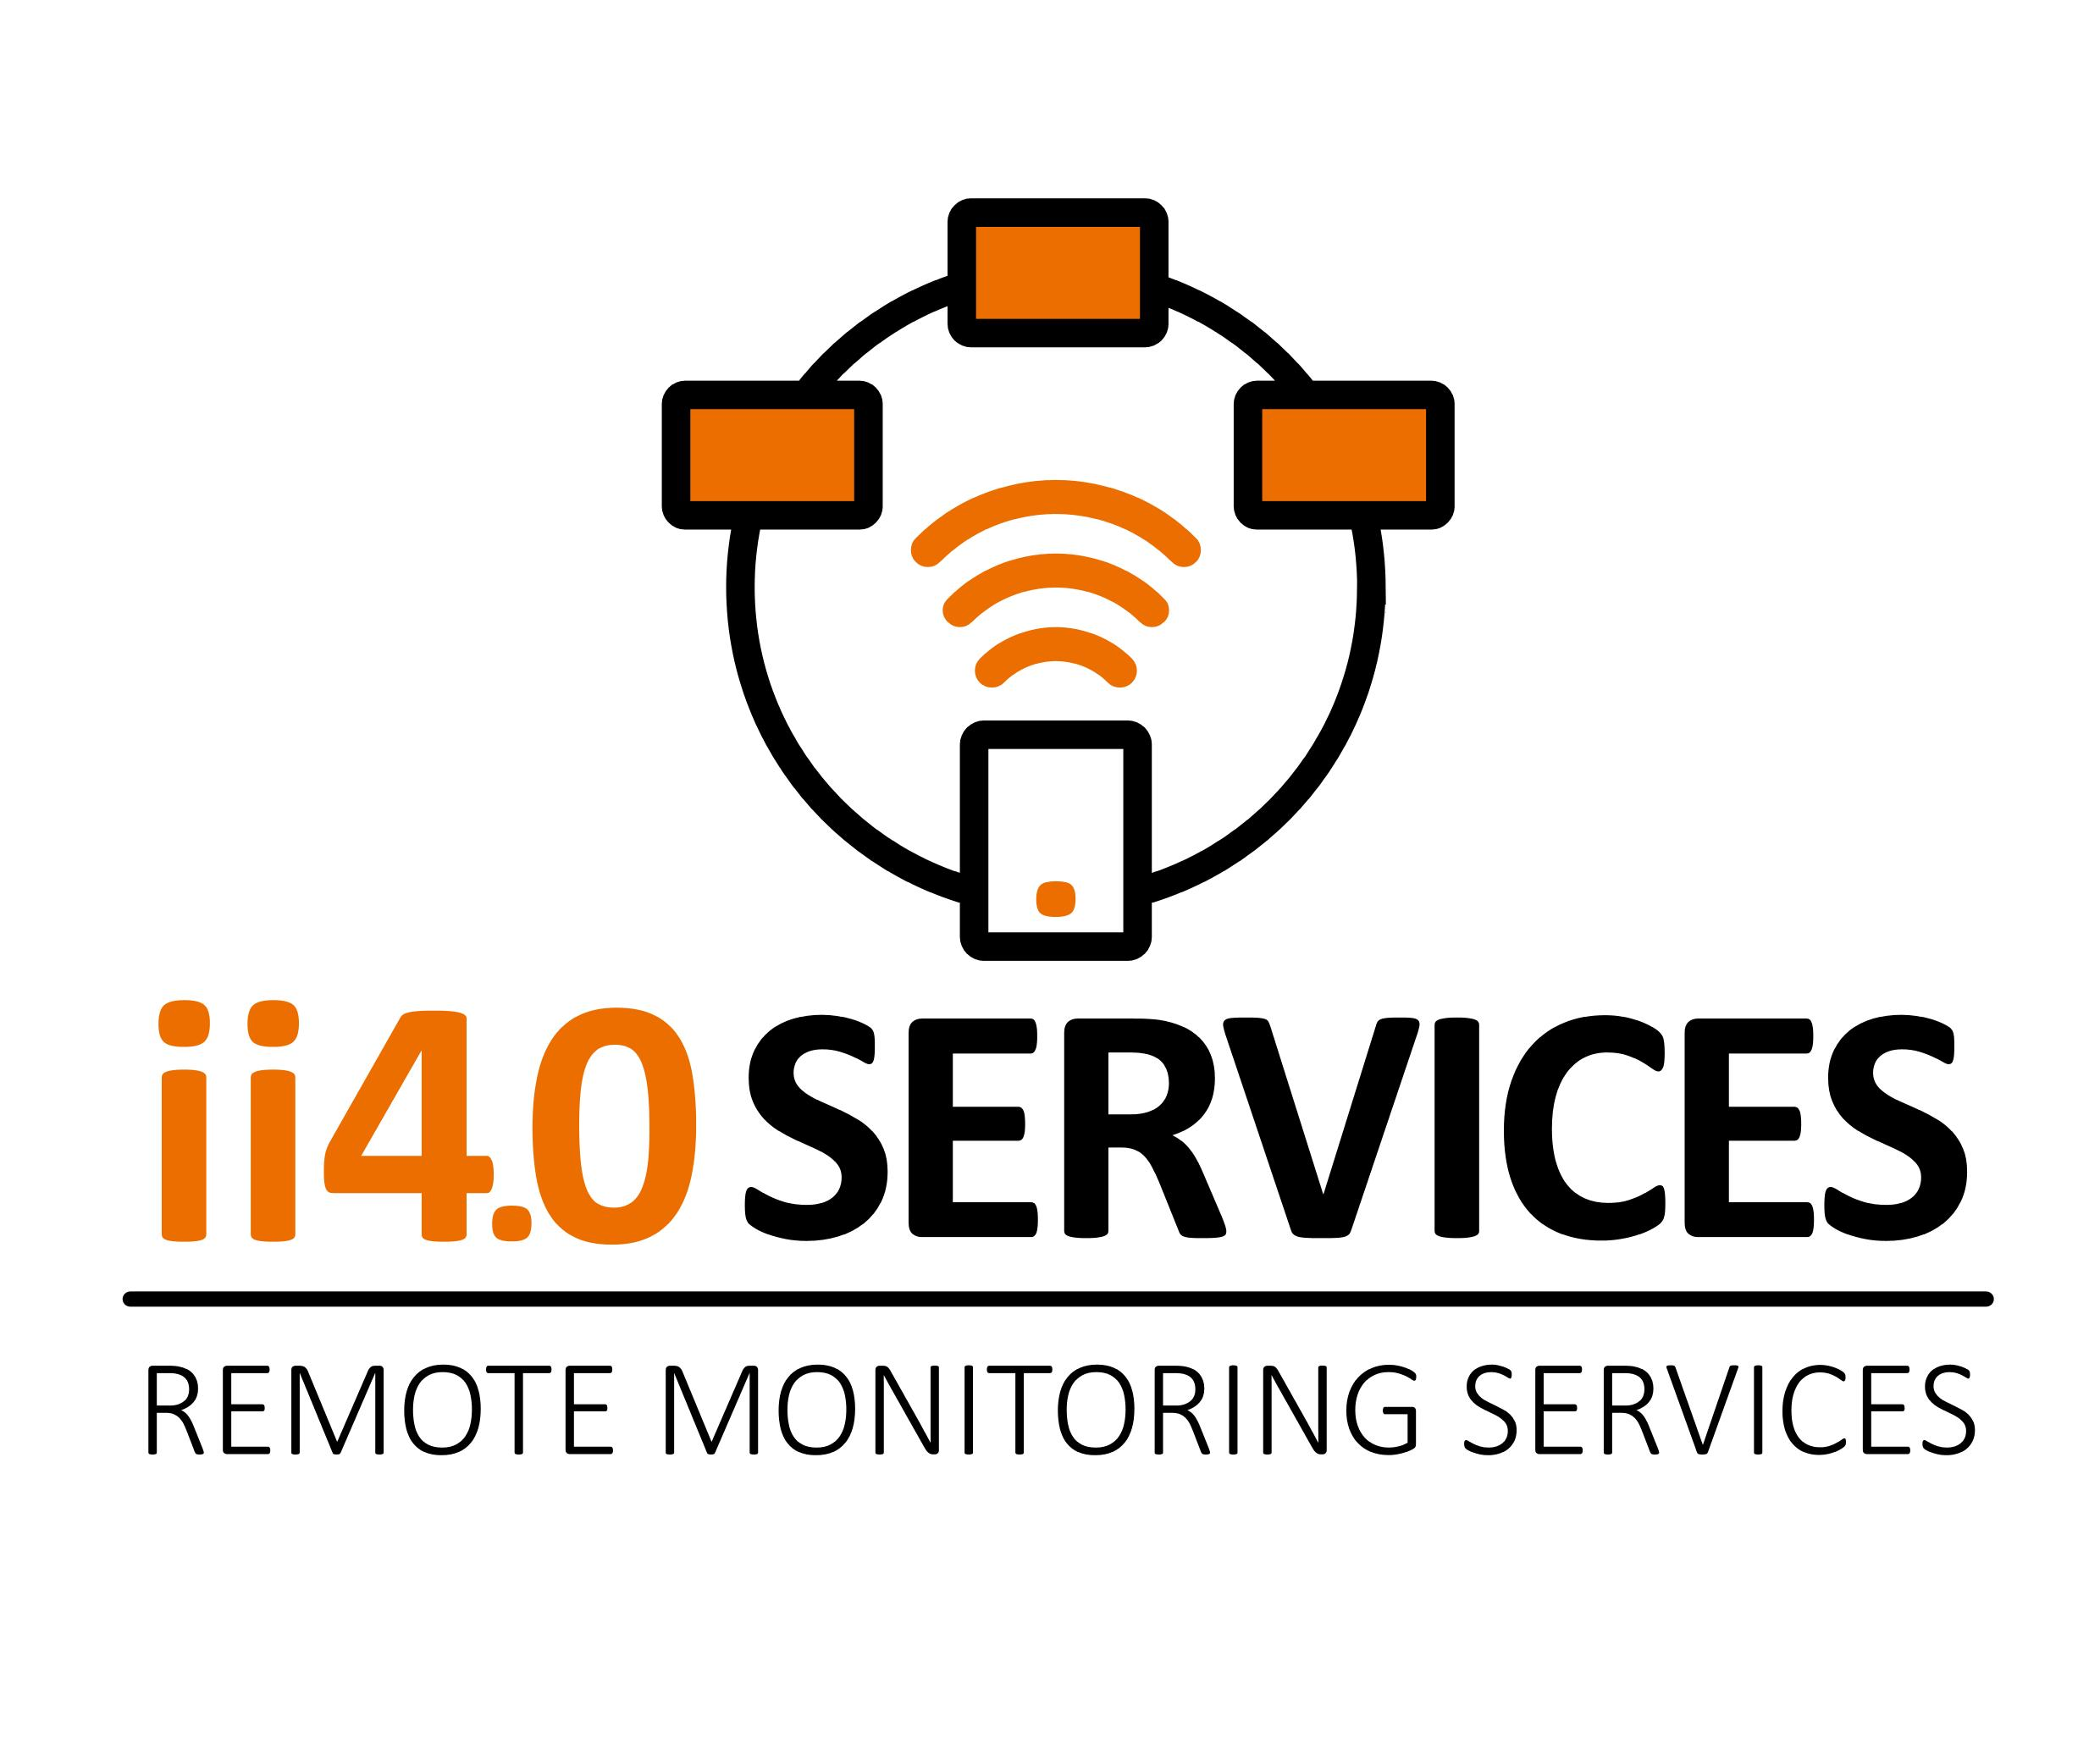 REMOTE MONITORING SERVICES